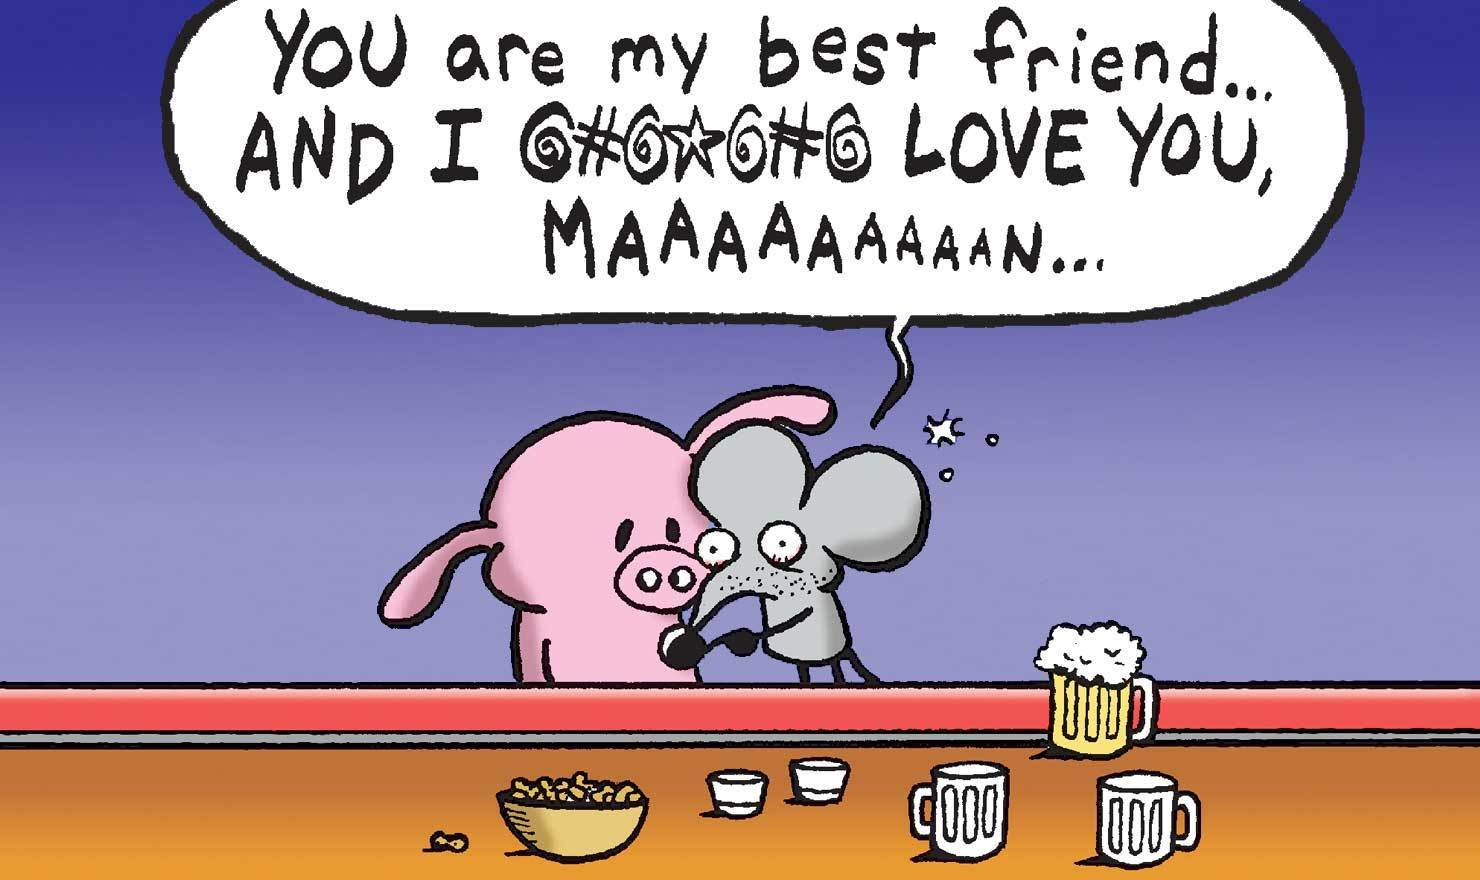 15 National Best Friends Day-Friendly Comics